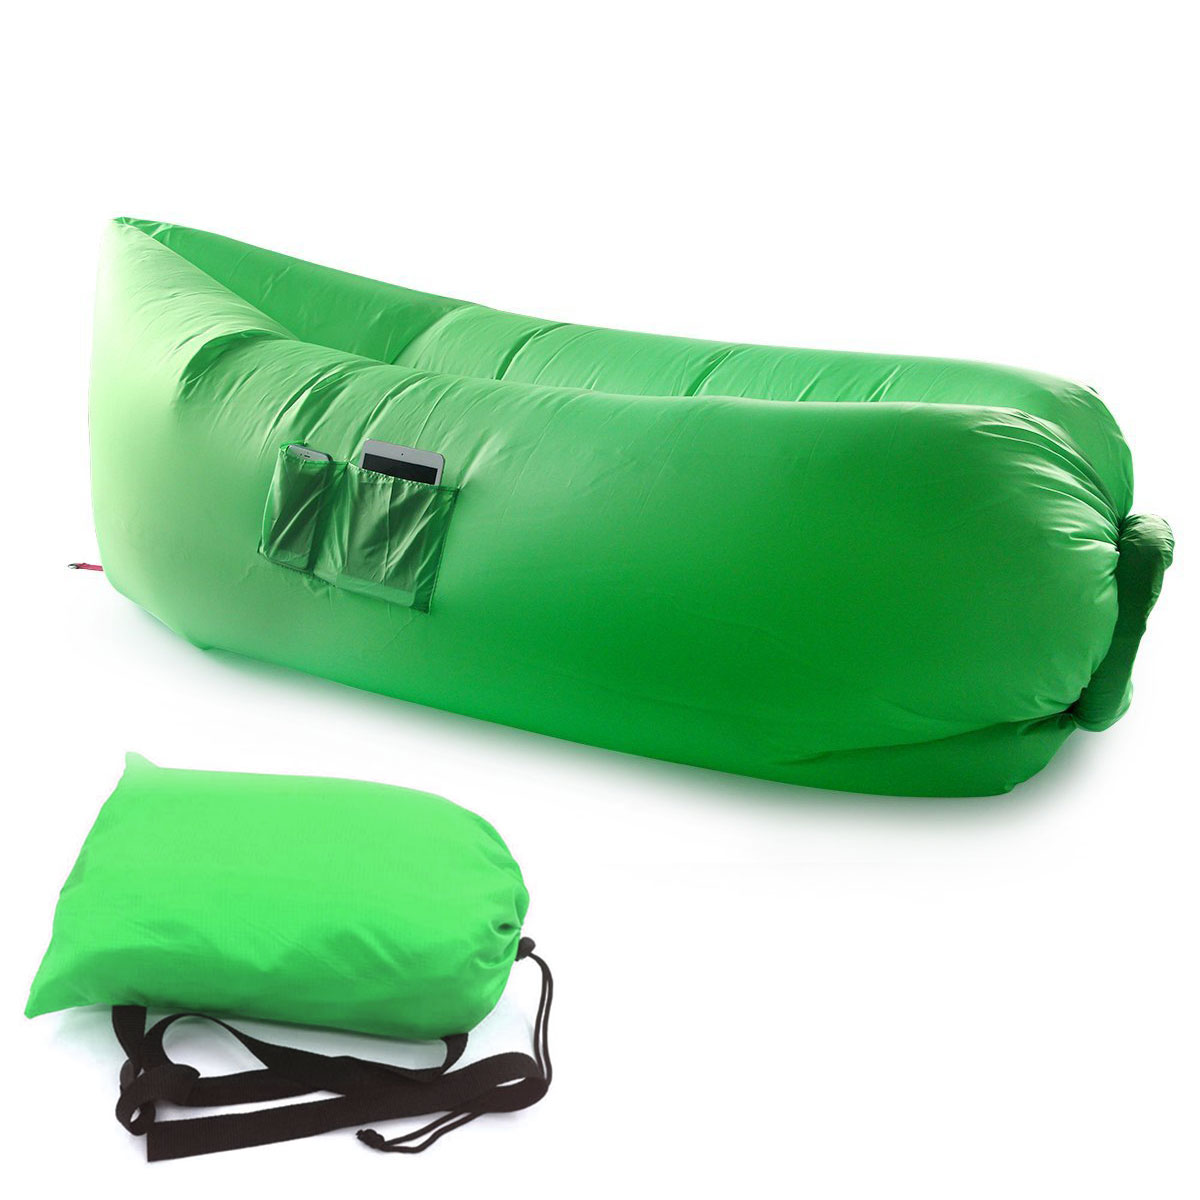 inflatable hangout lounge chair air sofa bag outdoor. Black Bedroom Furniture Sets. Home Design Ideas